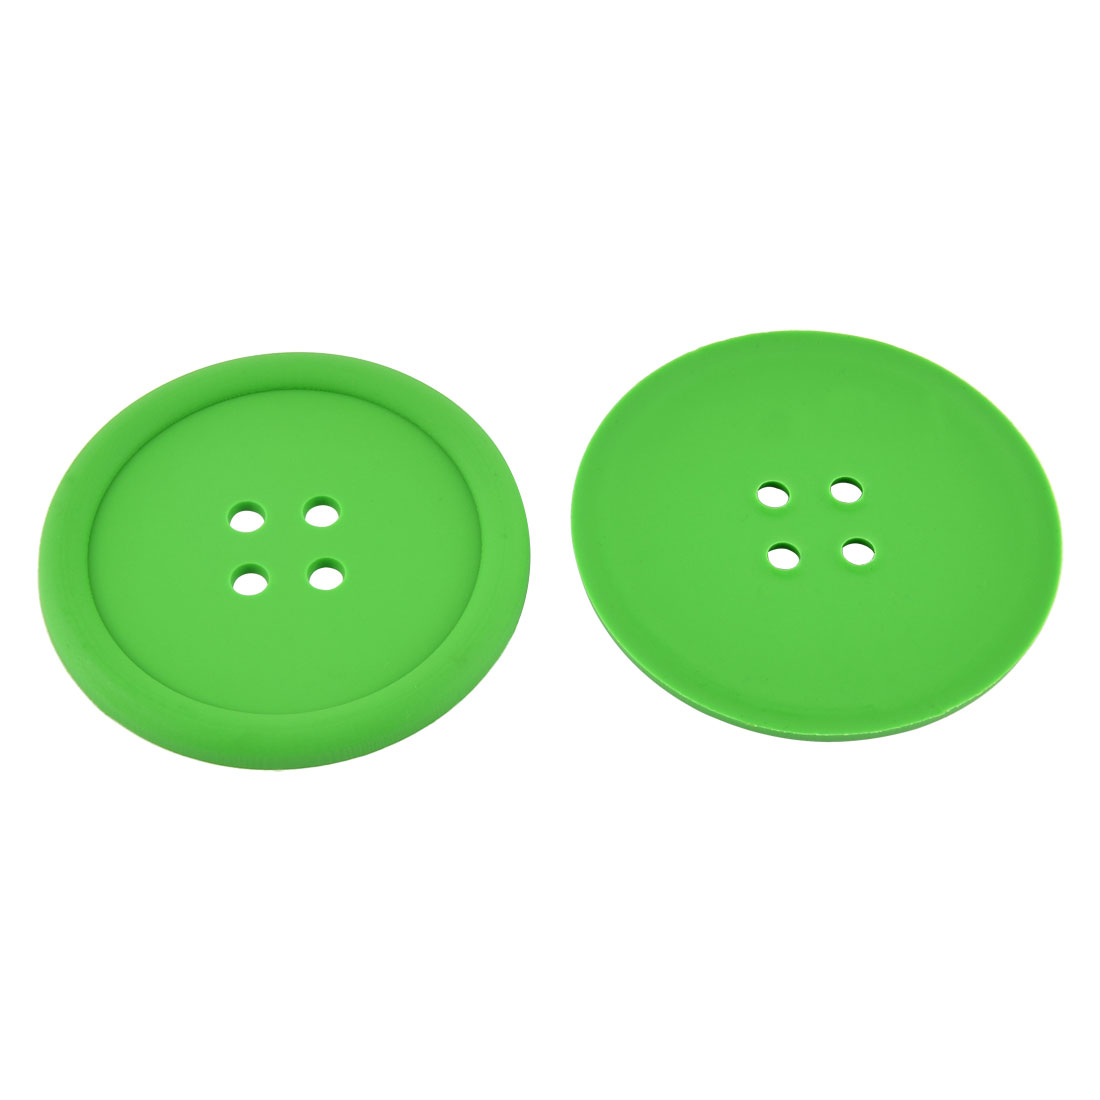 Household Silicone Coat Button Shaped Teapot Bottle Cup Coasters Mat Green 2 Pcs